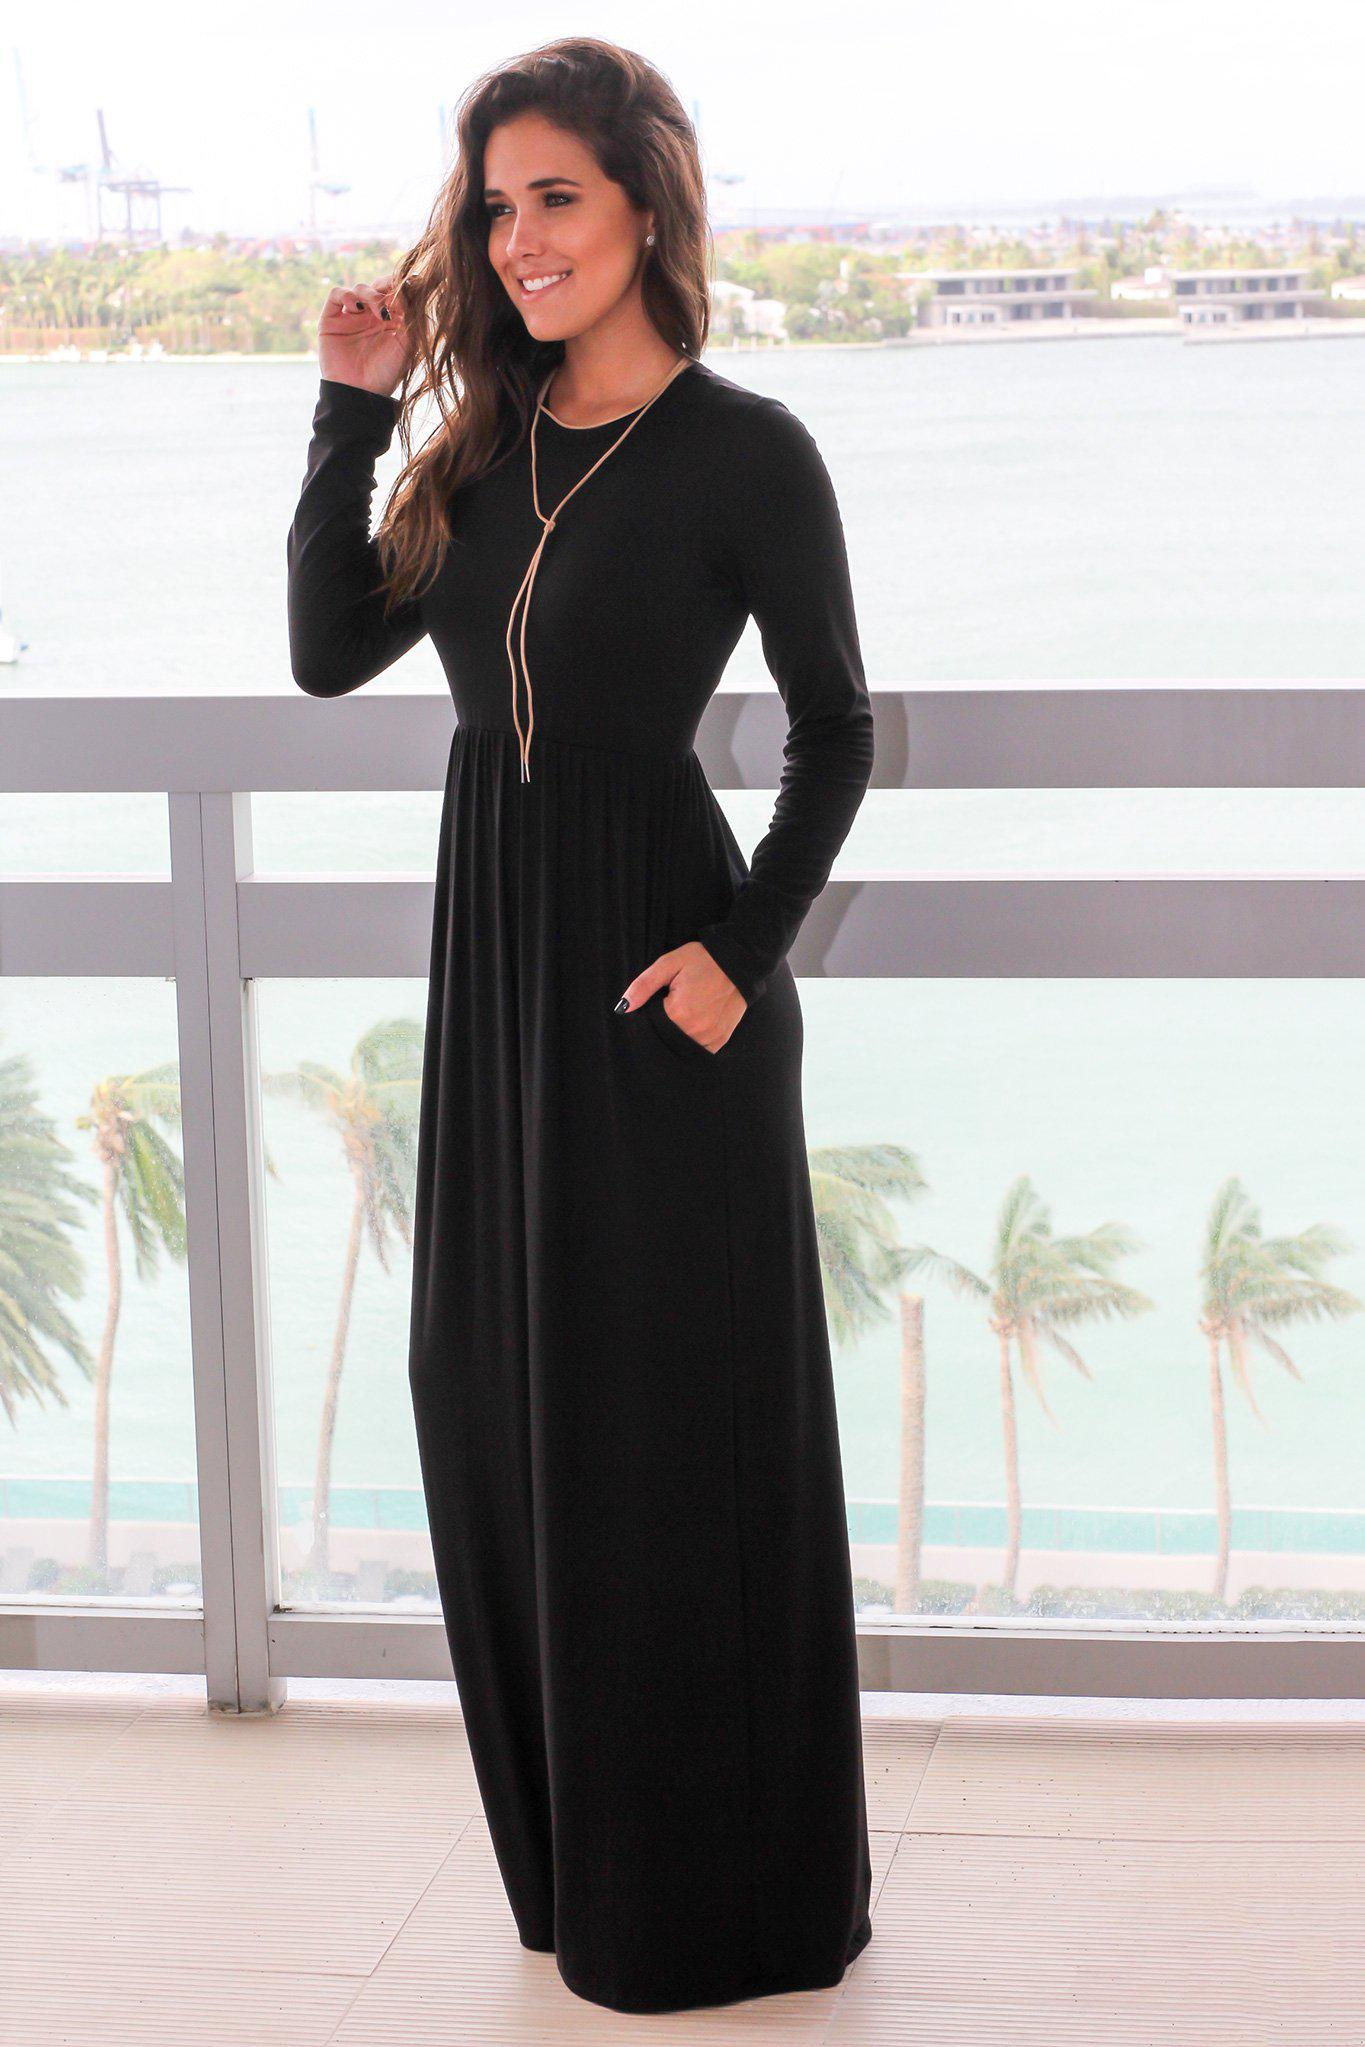 Advice on Maxi Dresses For Plus Size Women Long dresses are the perfect match for your frame as it minimizes large hips and legs. Here are a few tips on how to choose a maxi dress for your plus-size figure: Wear wide straps. Many plus size women carry weight around the .